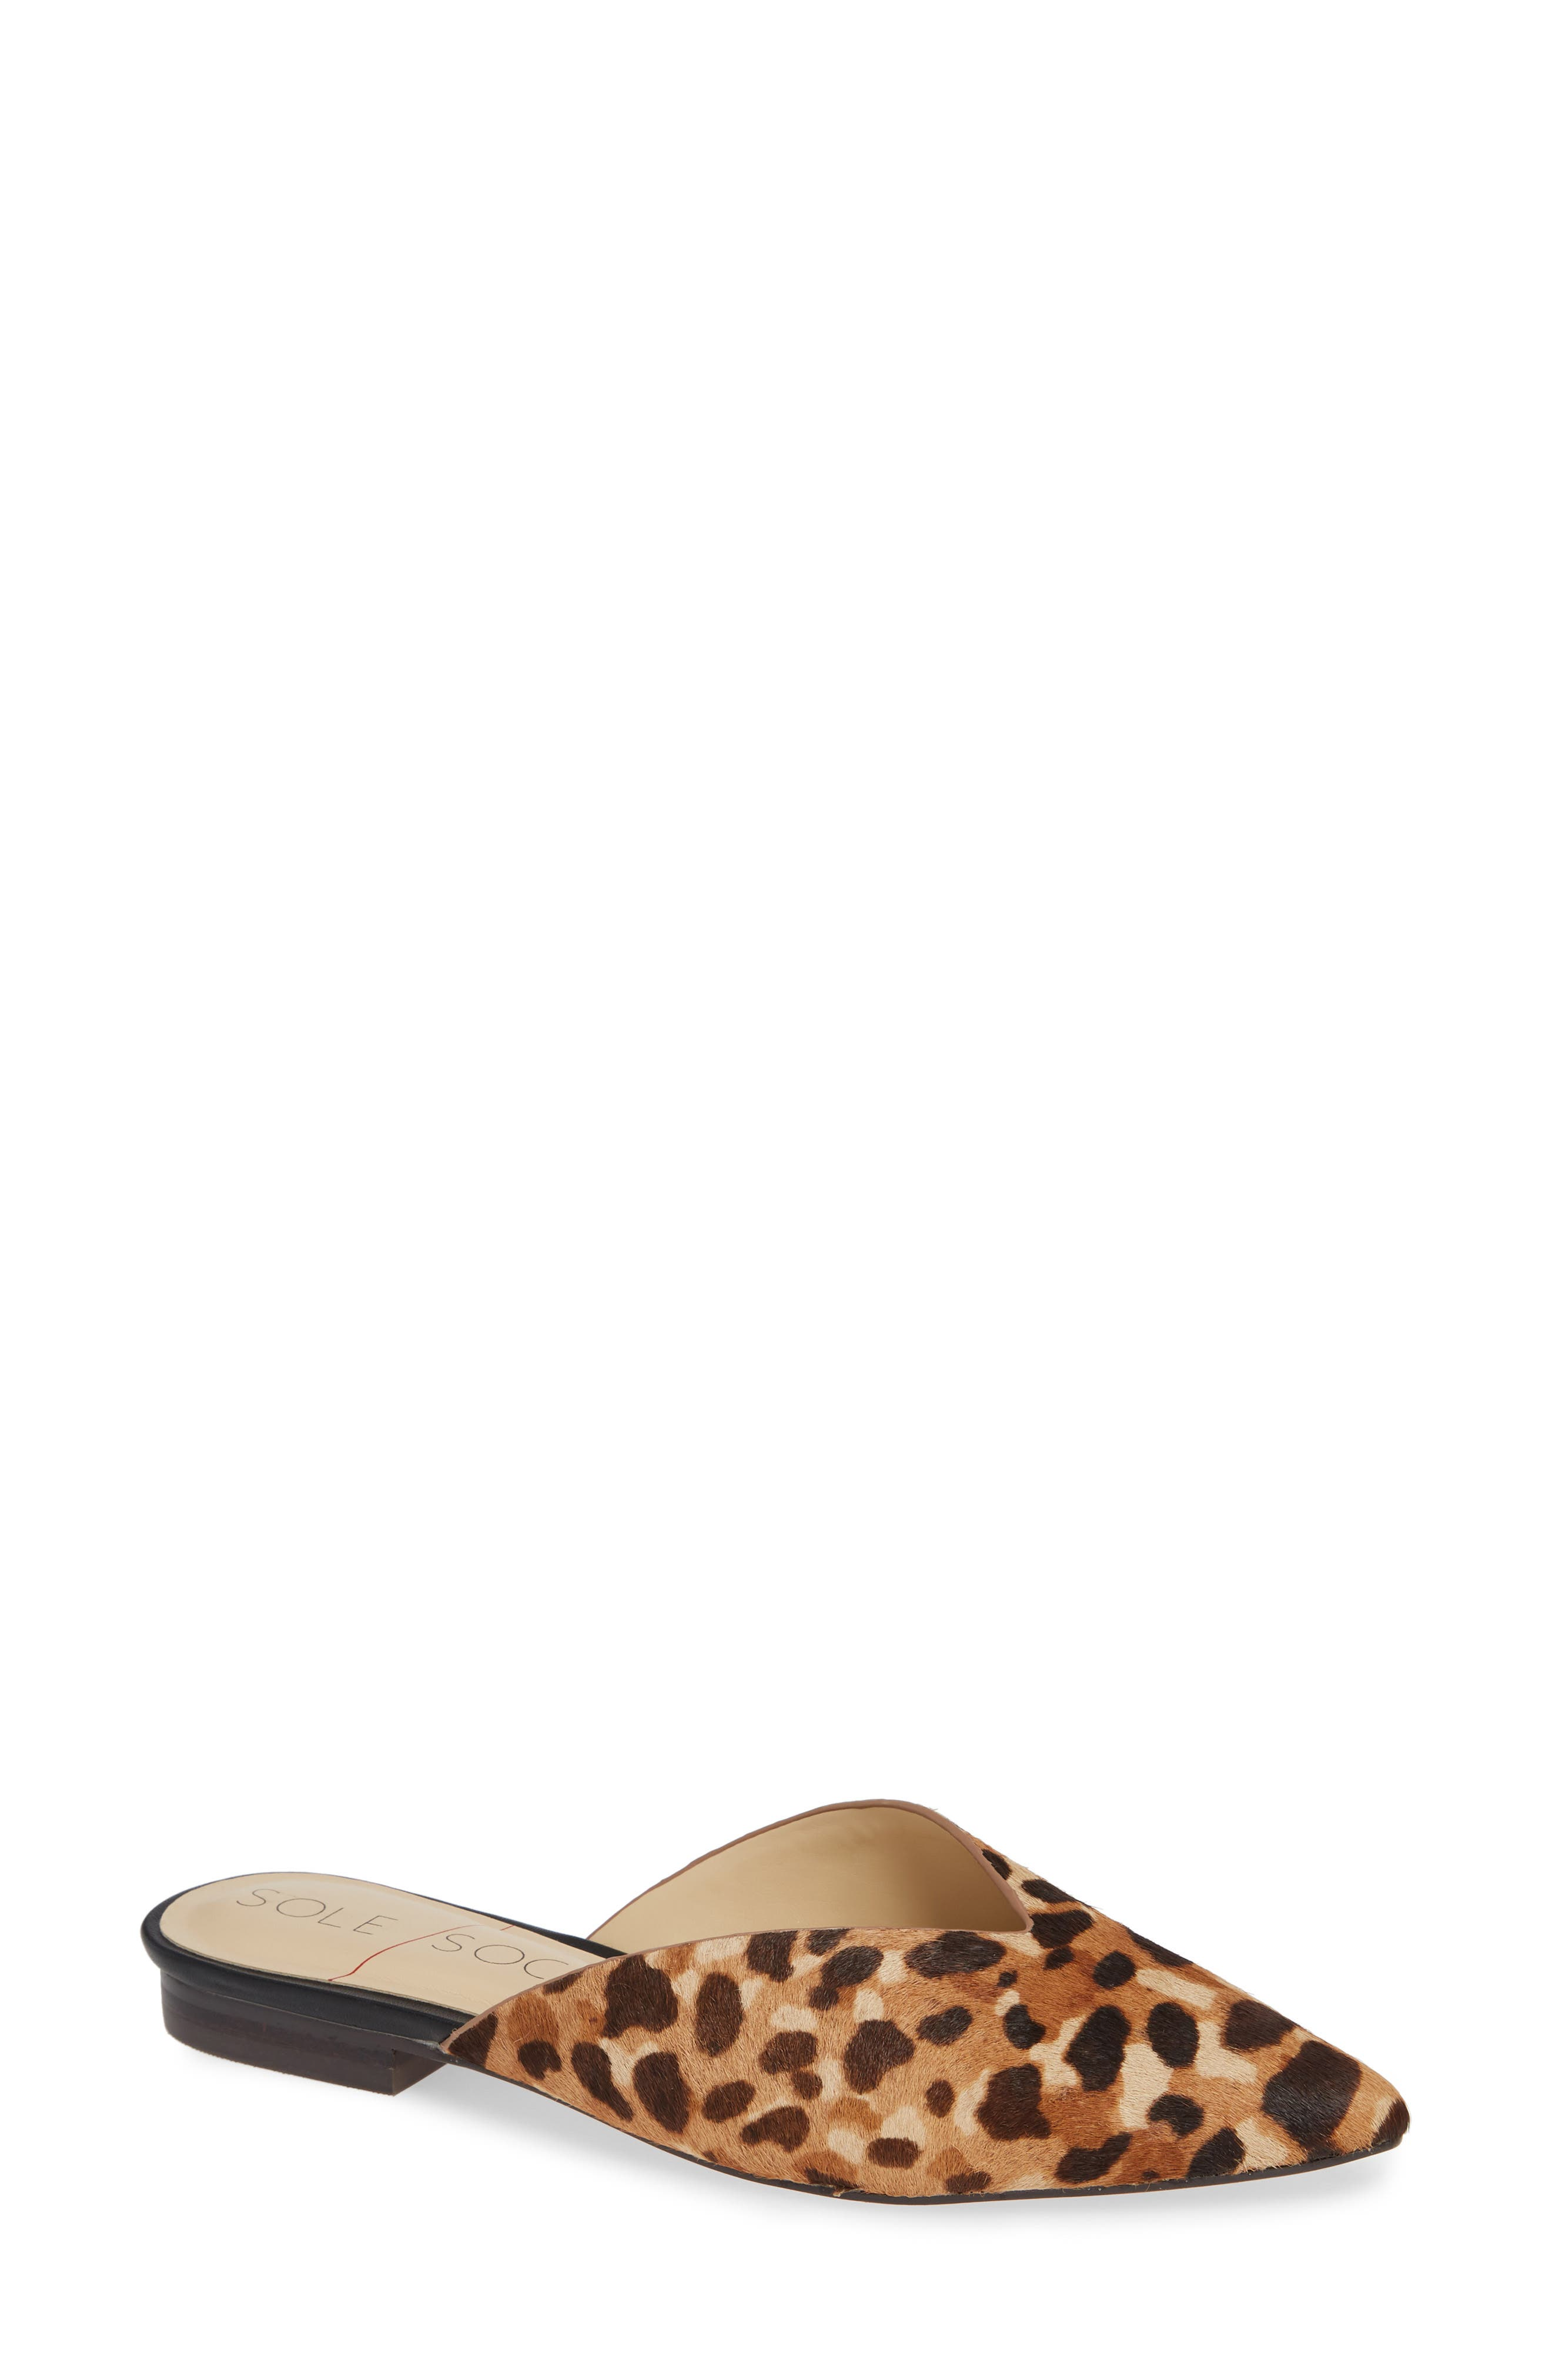 Rosemond Genuine Calf Hair Mule,                         Main,                         color, LEOPARD HAIRCALF